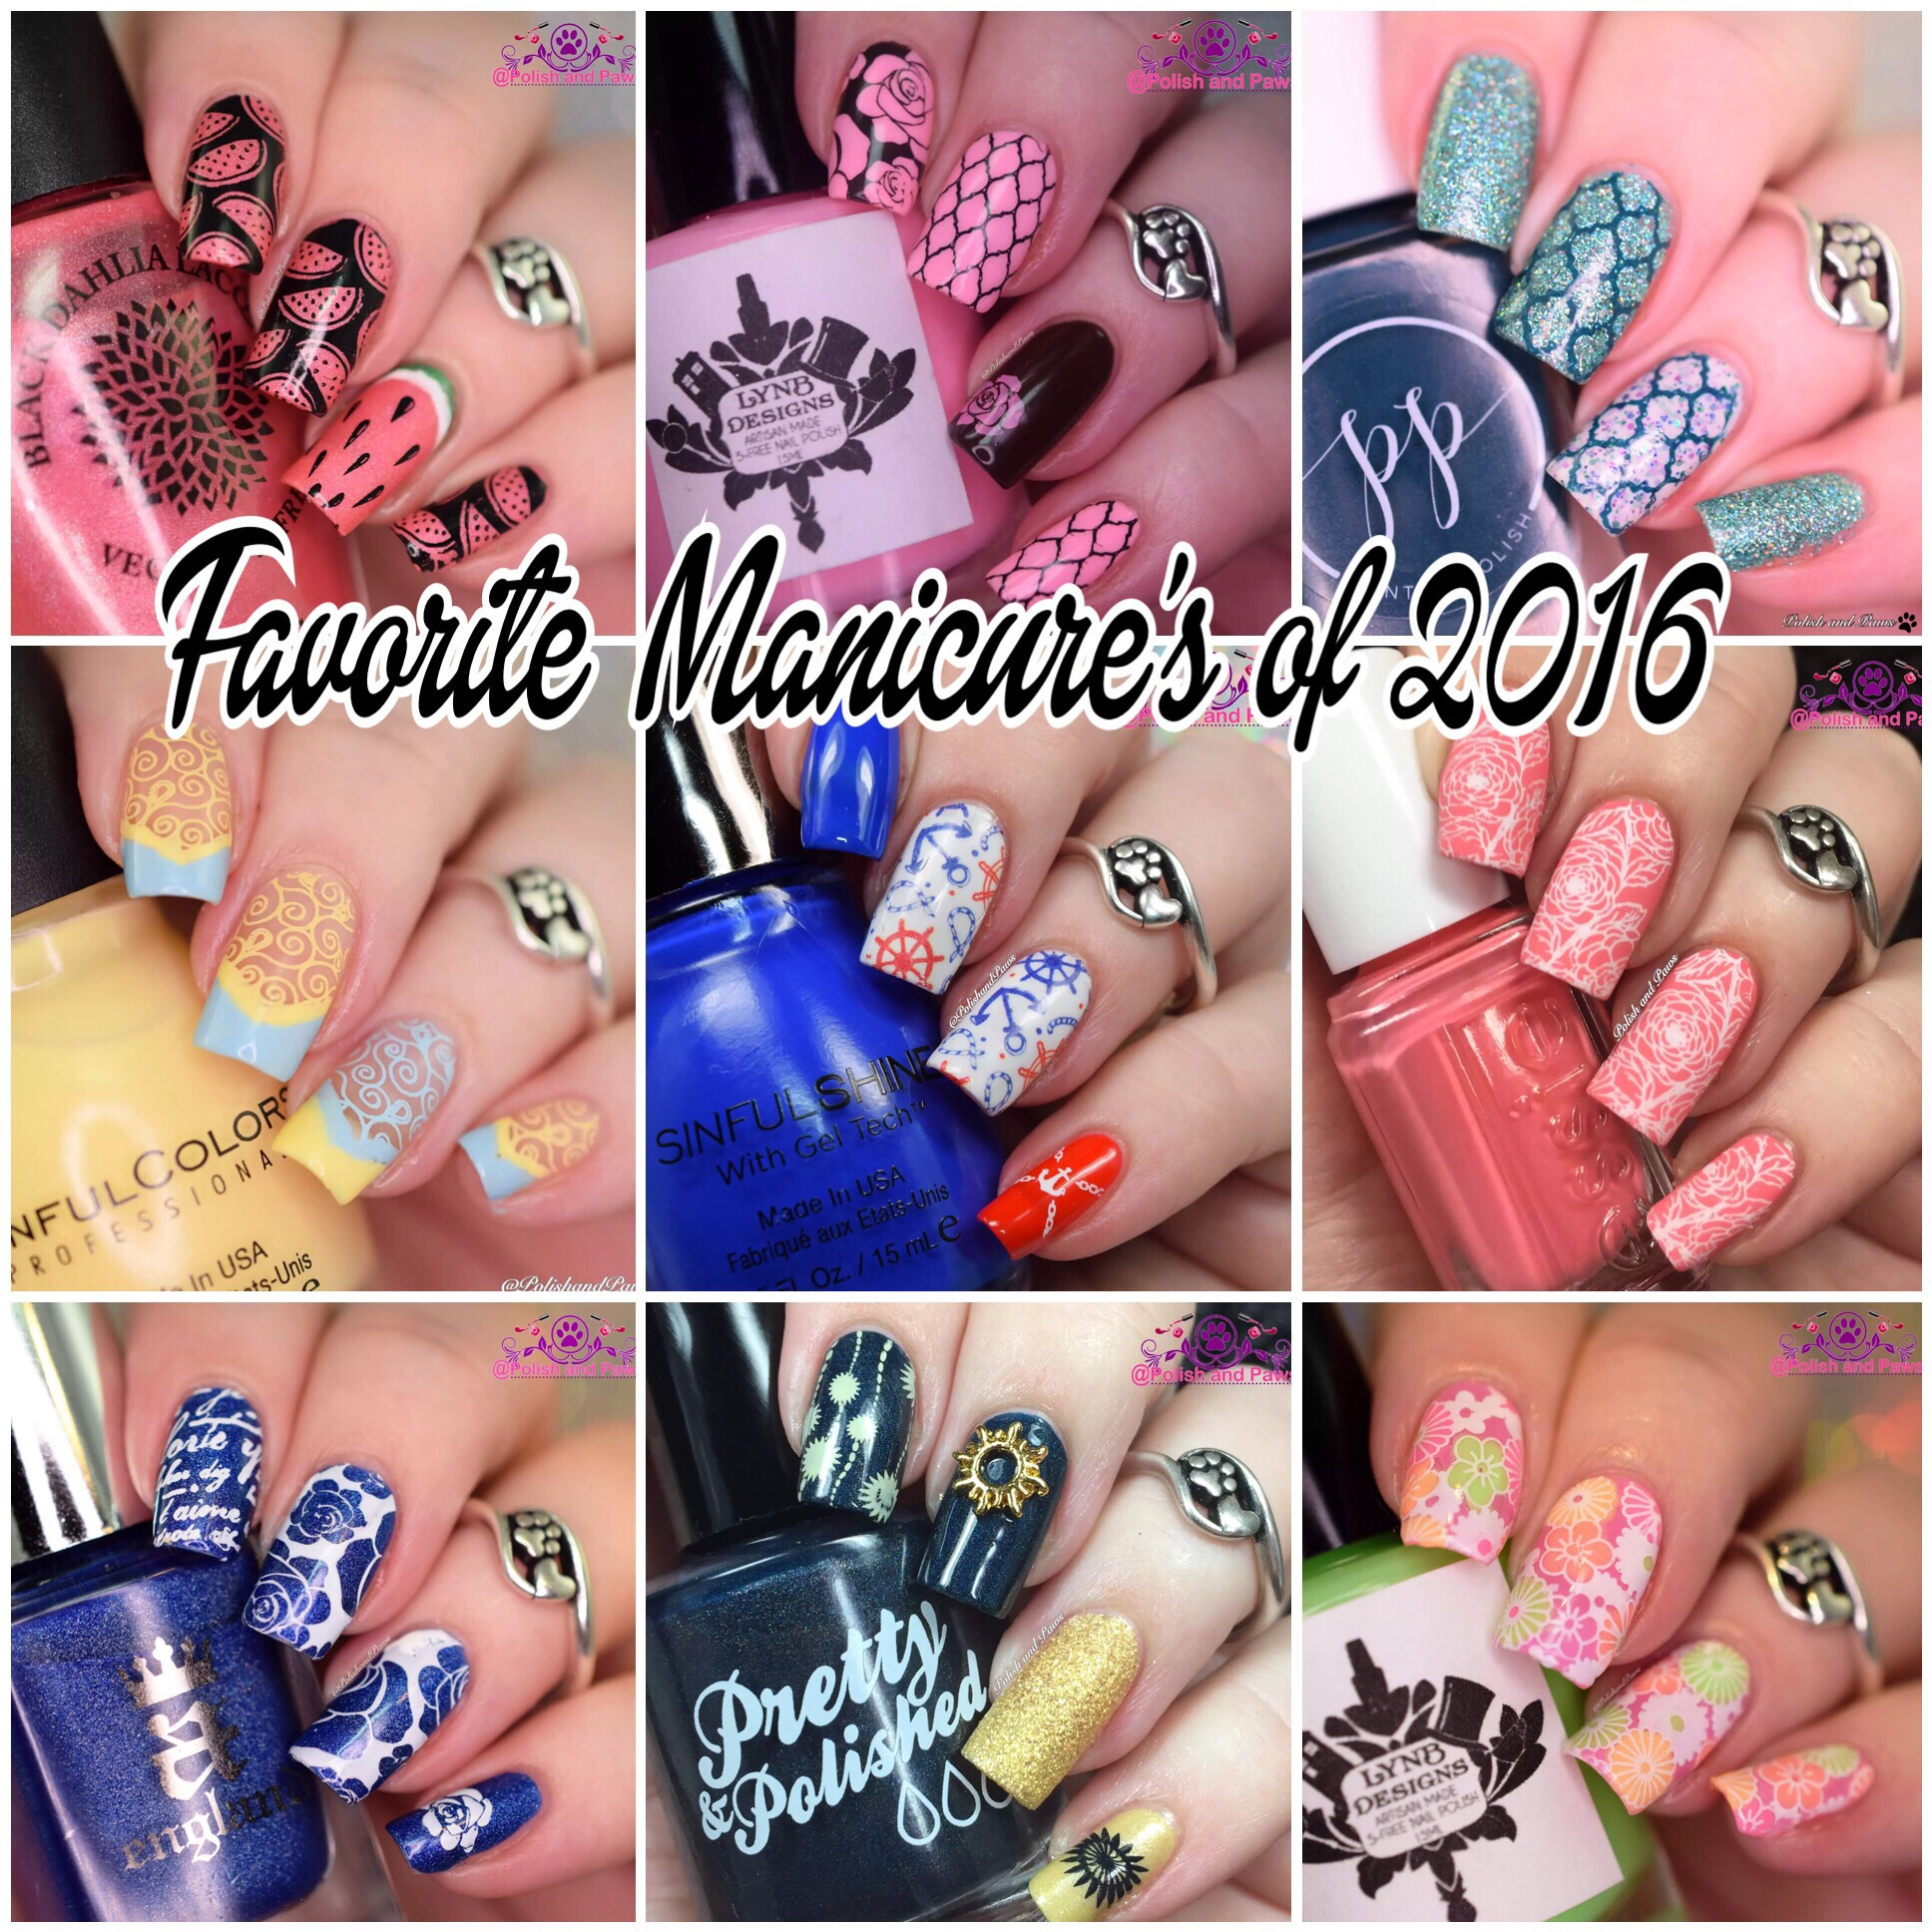 Favorite Manicures of 2016